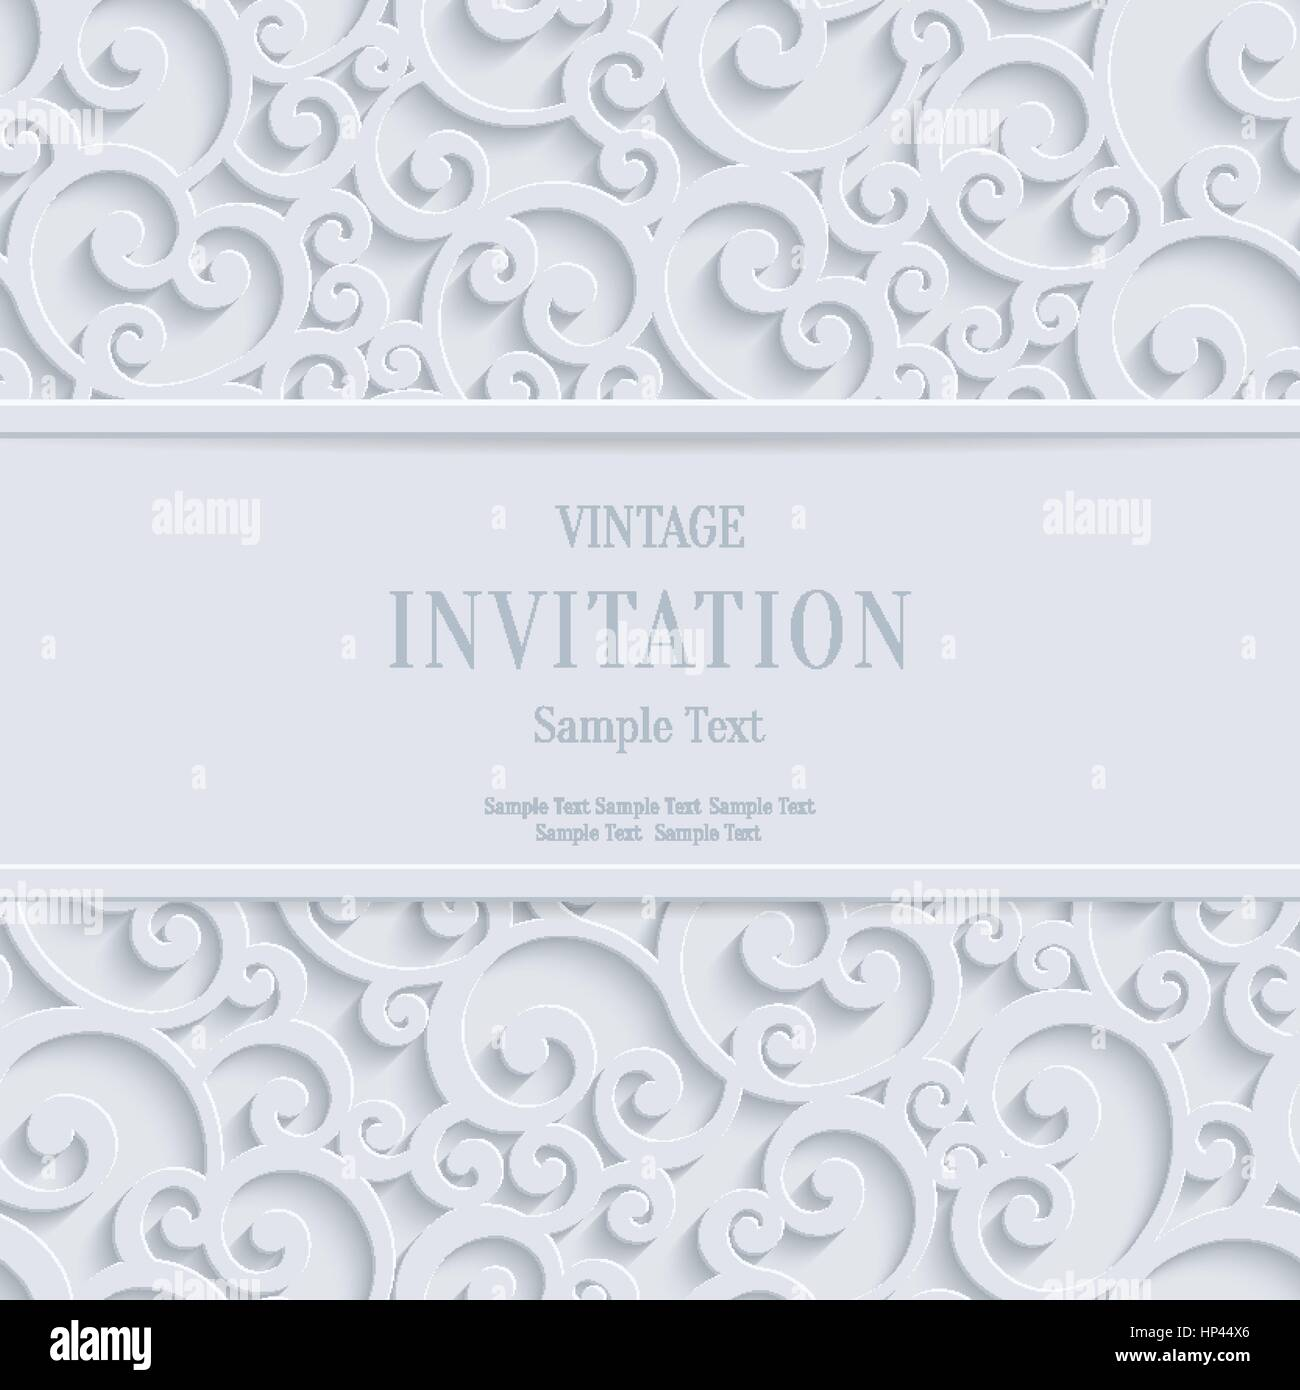 Floral swirl vector white 3d christmas or weddind invitation cards floral swirl vector white 3d christmas or weddind invitation cards background with curl damask pattern stopboris Choice Image